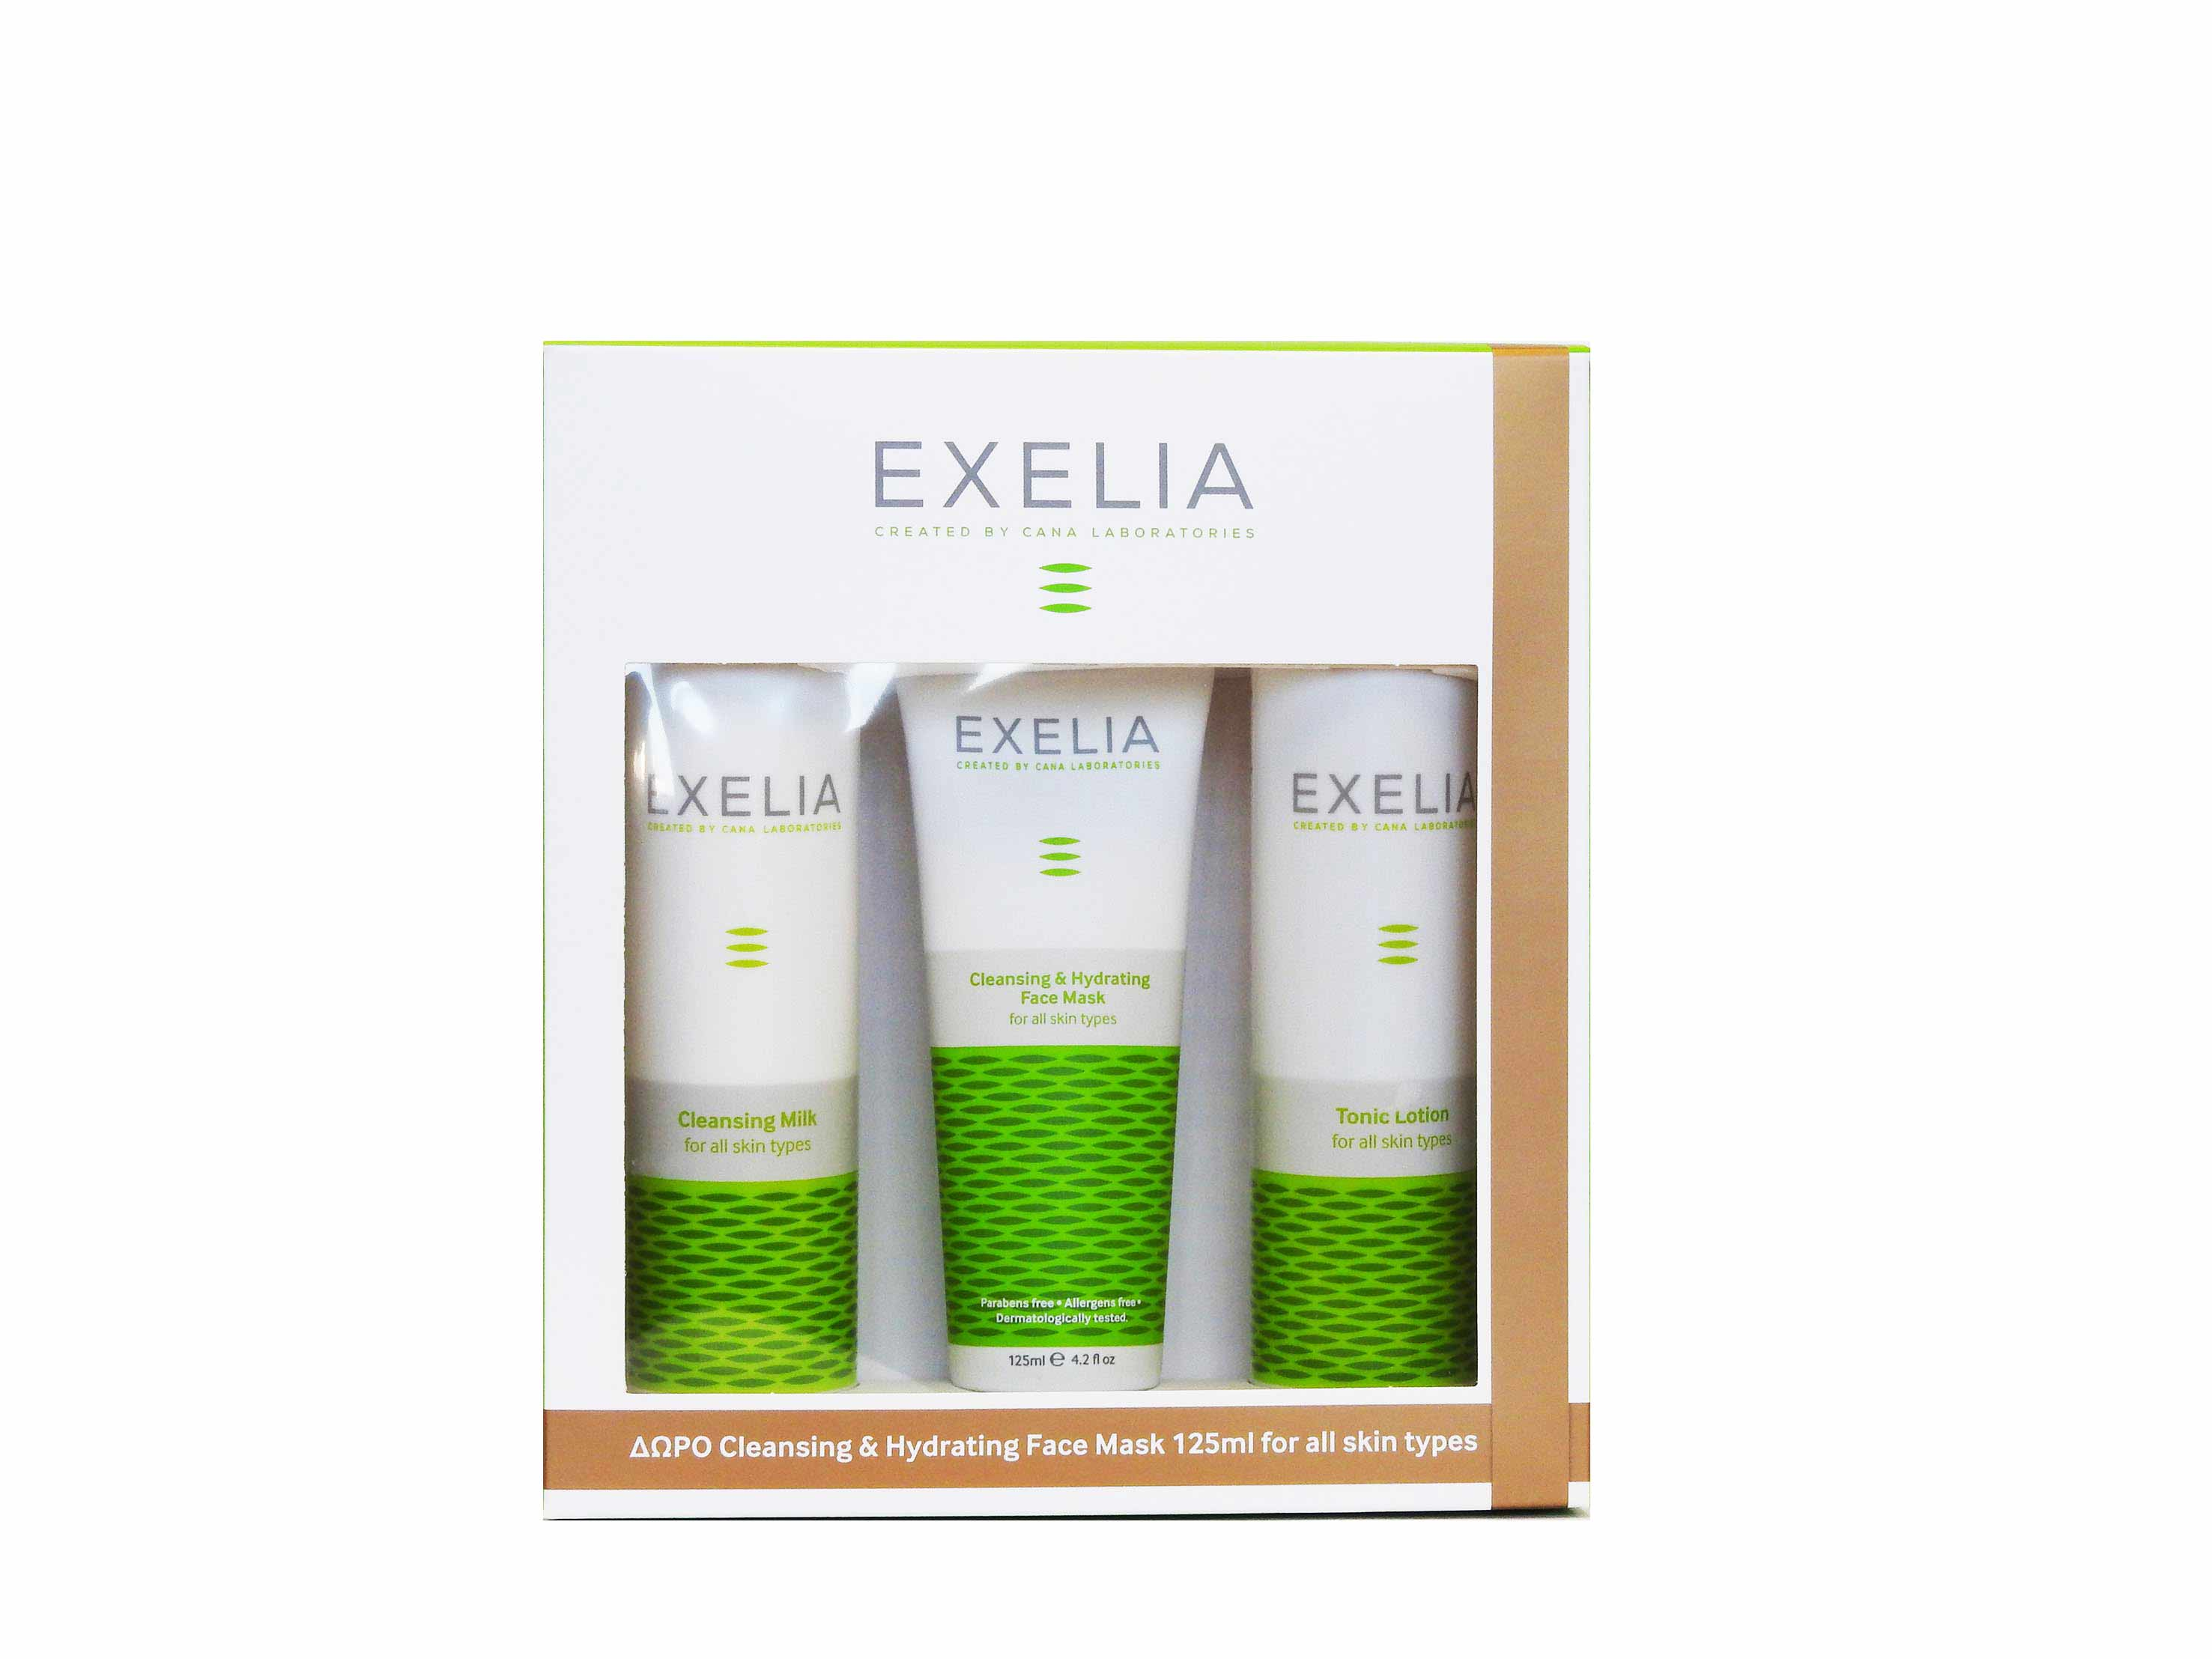 Exelia ΠΑΚΕΤΟ ΠΡΟΣΦΟΡΑΣ με Cleansing Milk 200ml, Tonic Lotion, 200ml & ΔΩΡΟ Cleansing & Hydrating Face Mask, 125ml